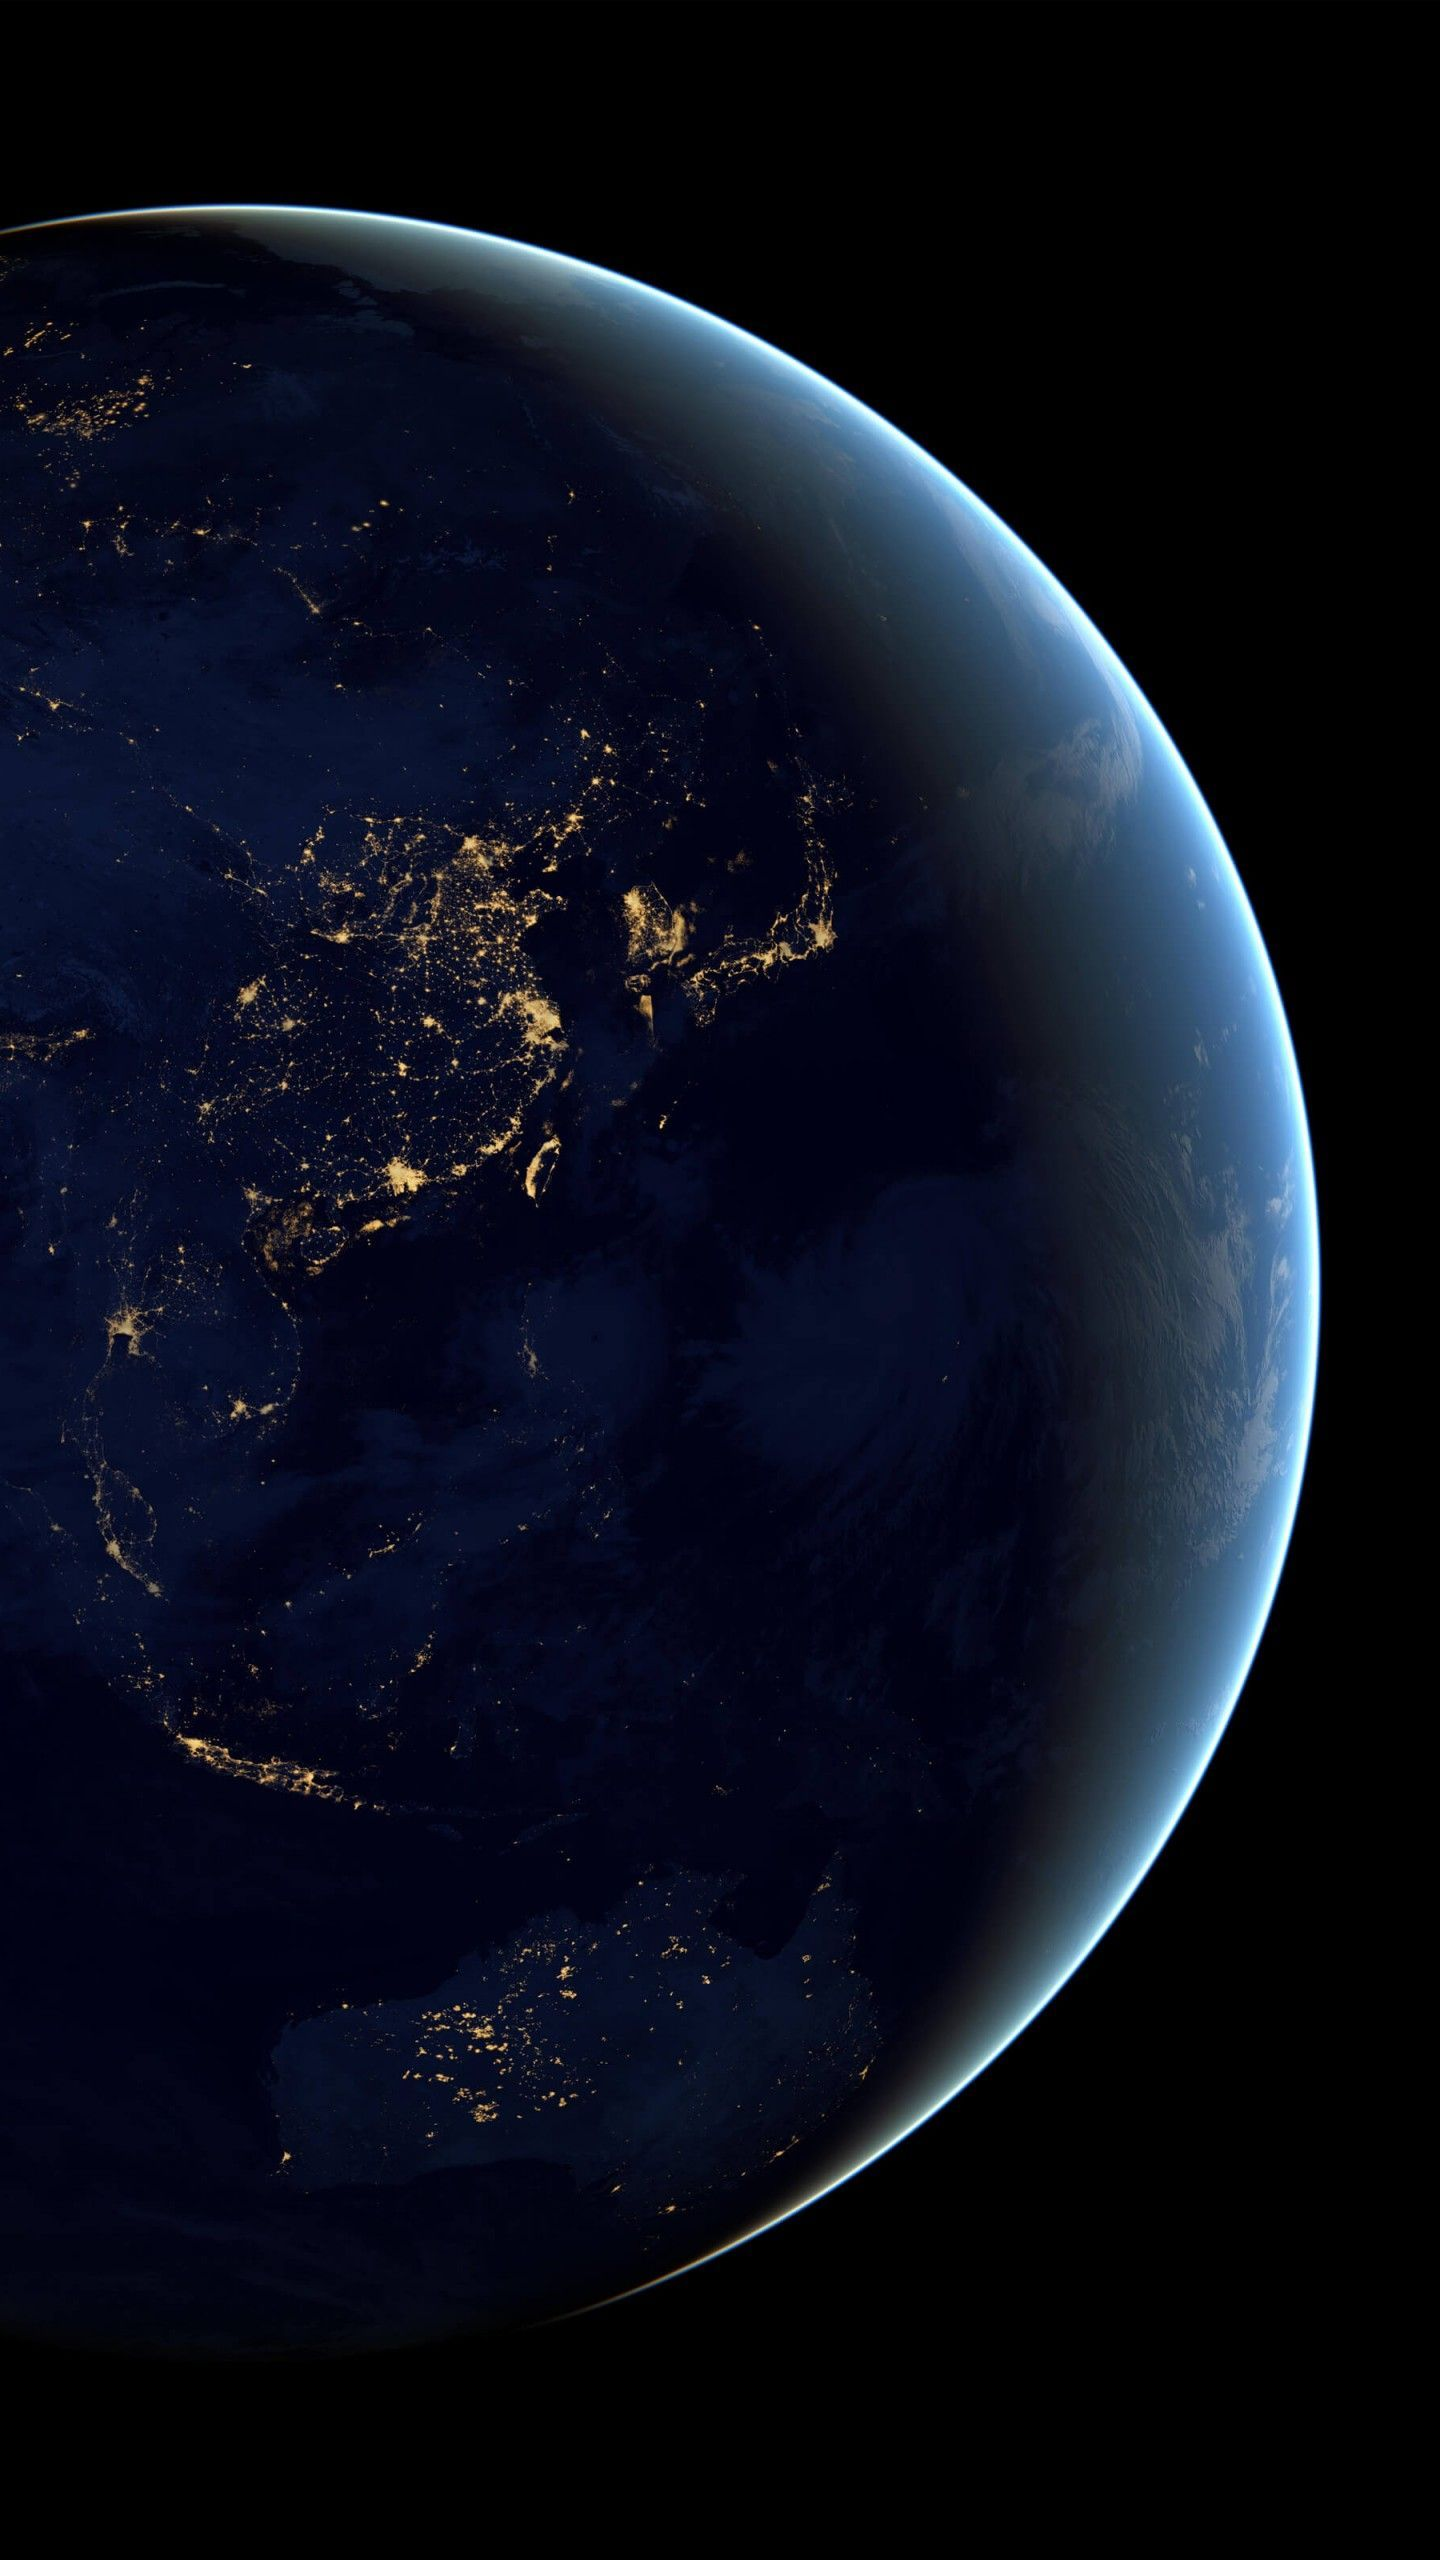 Earth From Space Mobile Wallpaper Http Wallpapers And Backgrounds Net Earth From Space Mobile Wallpaper Wallpaper Earth New Wallpaper Iphone Earth At Night